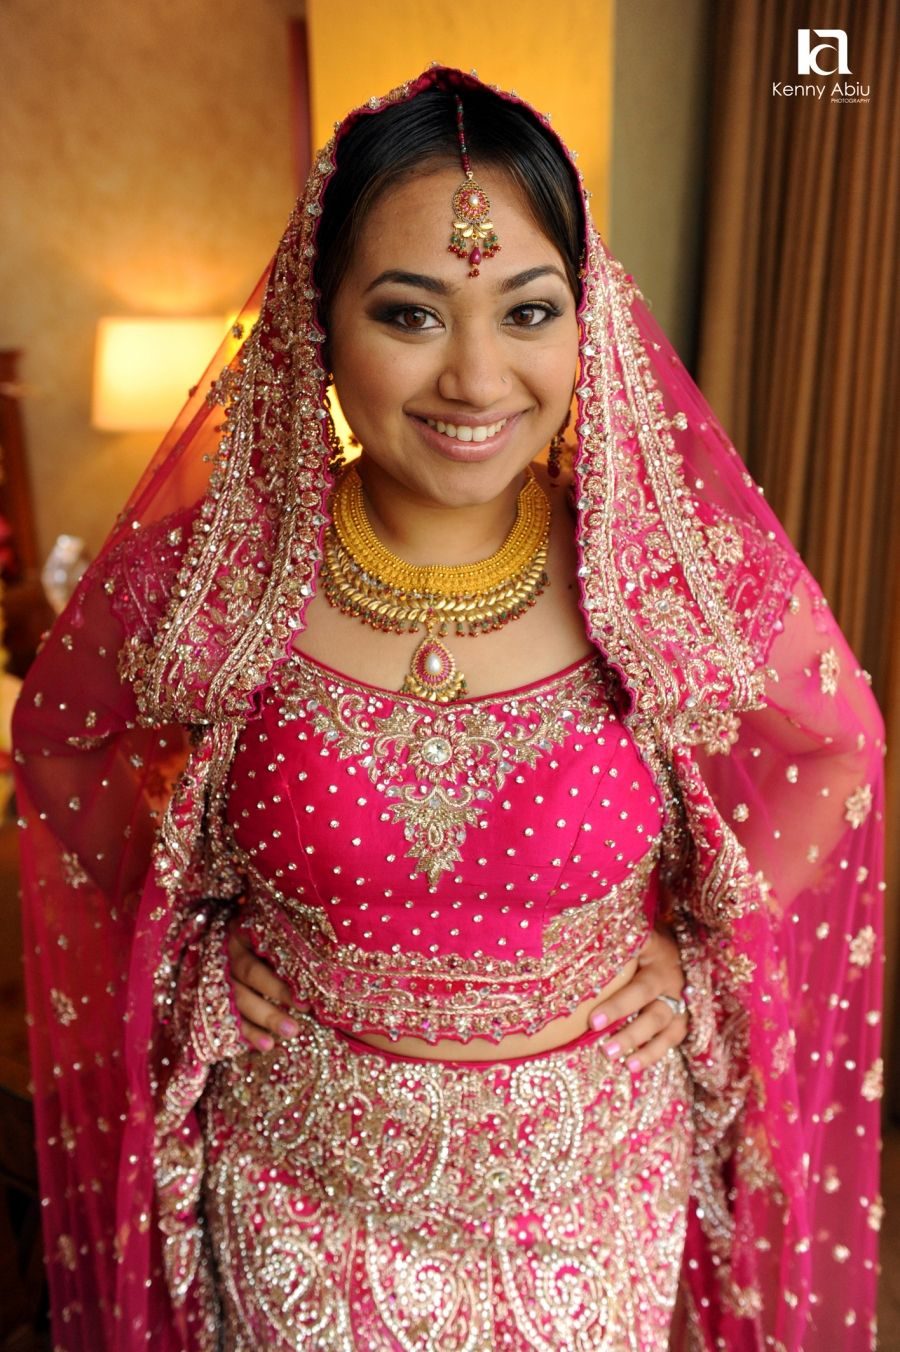 LOS ANGELES INDIAN WEDDING SOUTH ASIAN BRIDE MAKEUP ARTIST